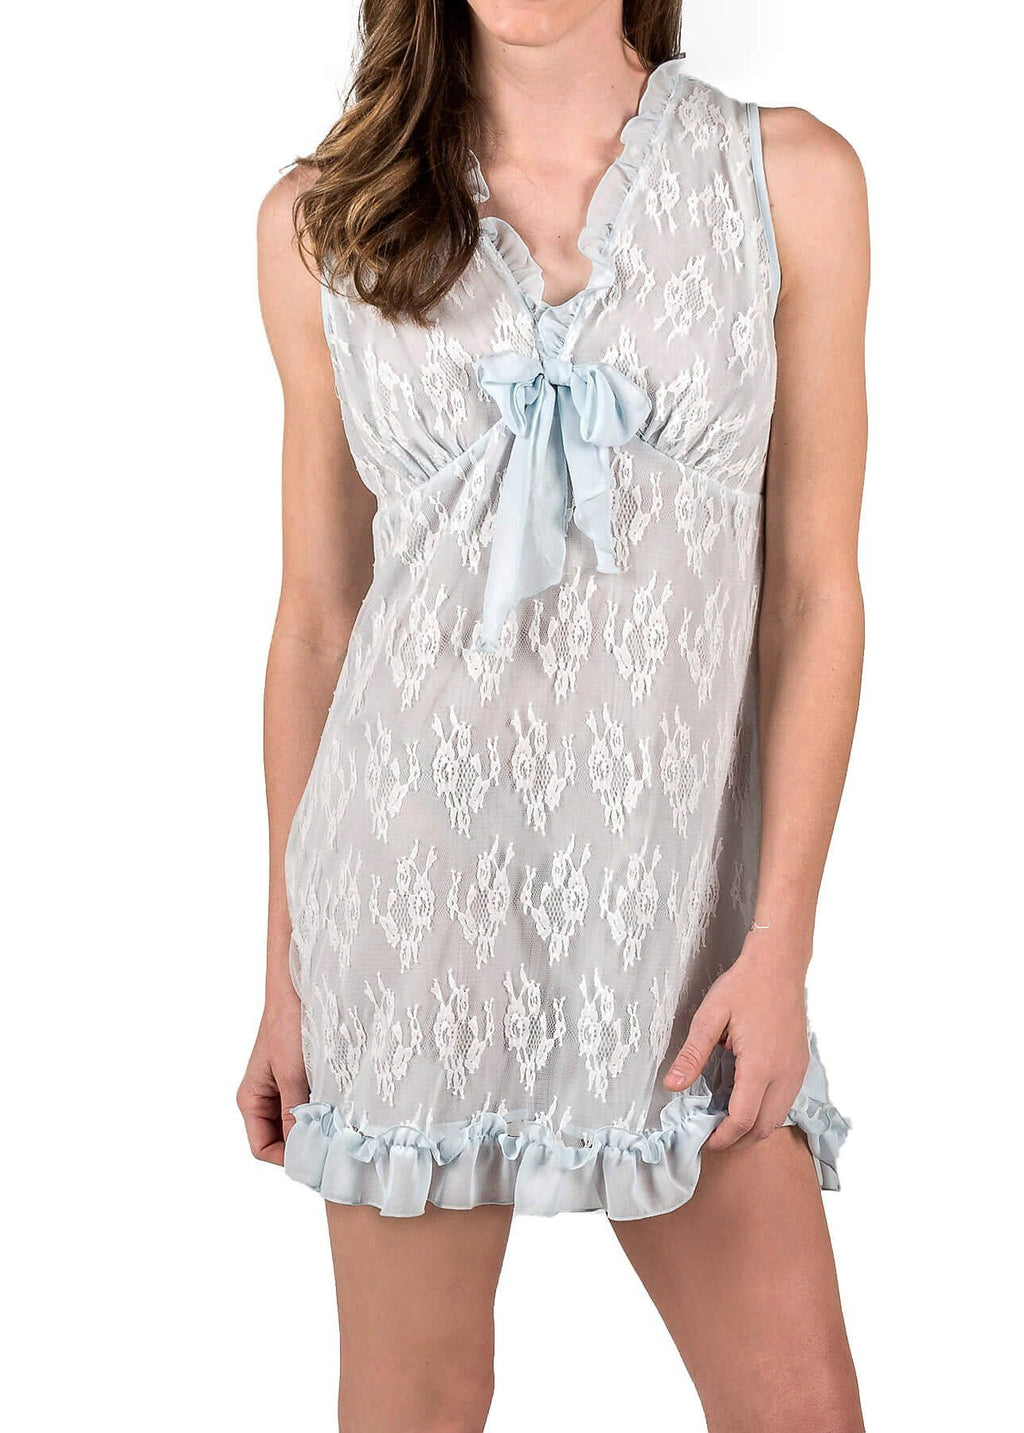 Chantilly Short Nightgown Mystique Intimates